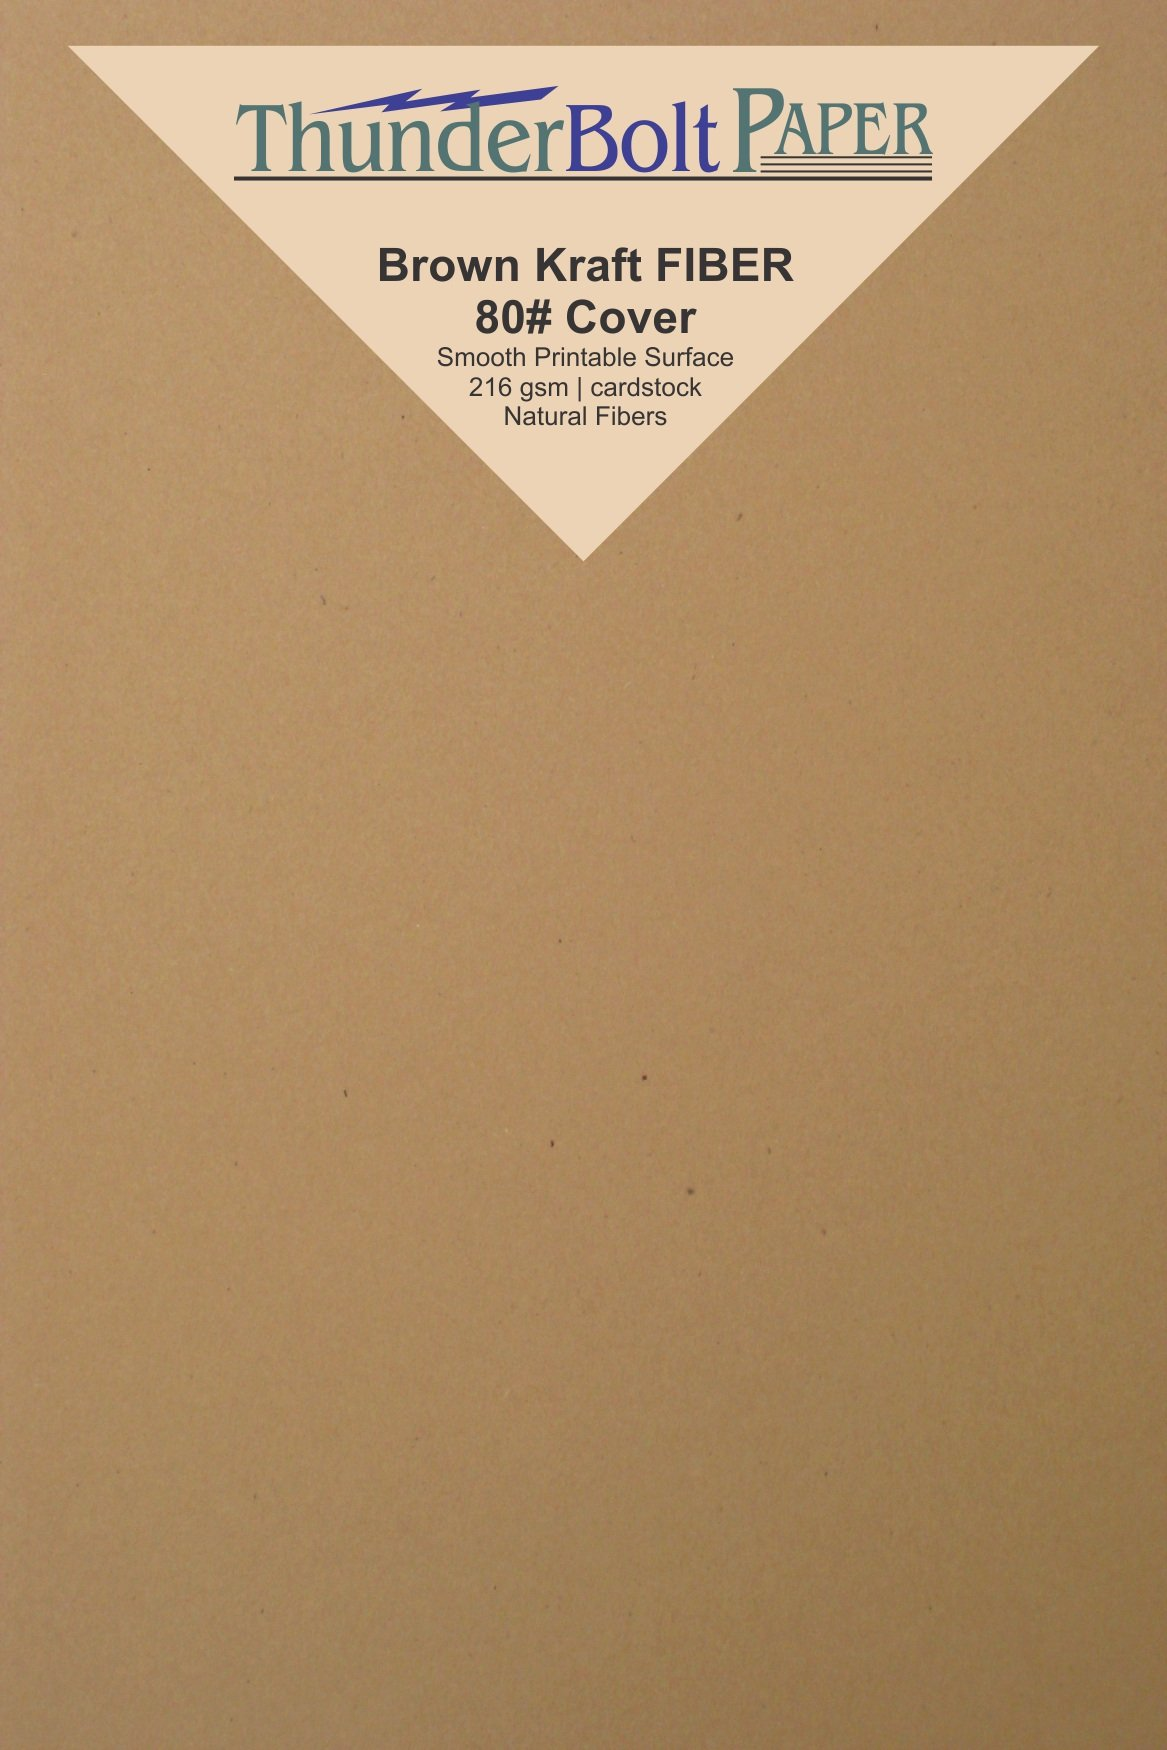 50 Brown Kraft Fiber 80# Cover Paper Sheets - 4'' X 6'' (4X6 Inches) Photo|Card|Frame Size - Rich Earthy Color with Natural Fibers - 80lb/pound Cardstock - Smooth Finish